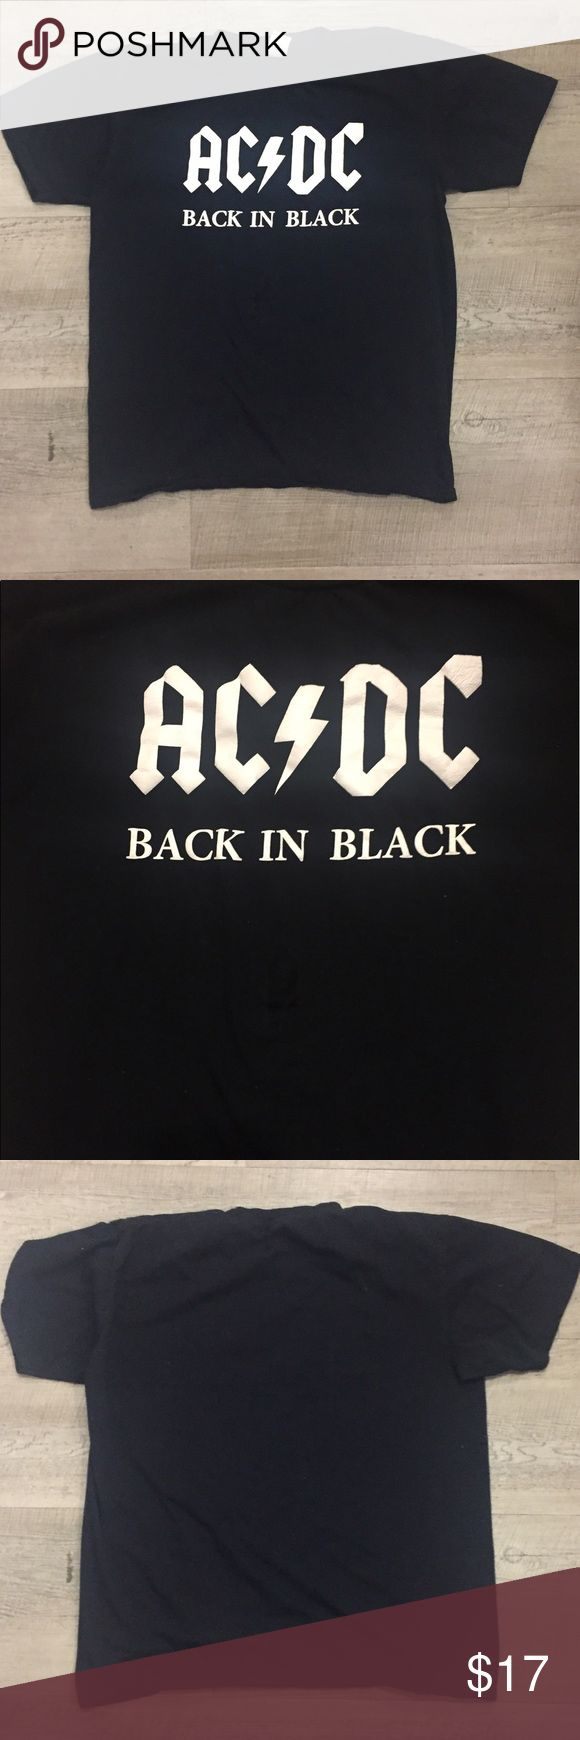 Back in black t shirt - Ac Dc Back In Black Men S Medium T Shirt